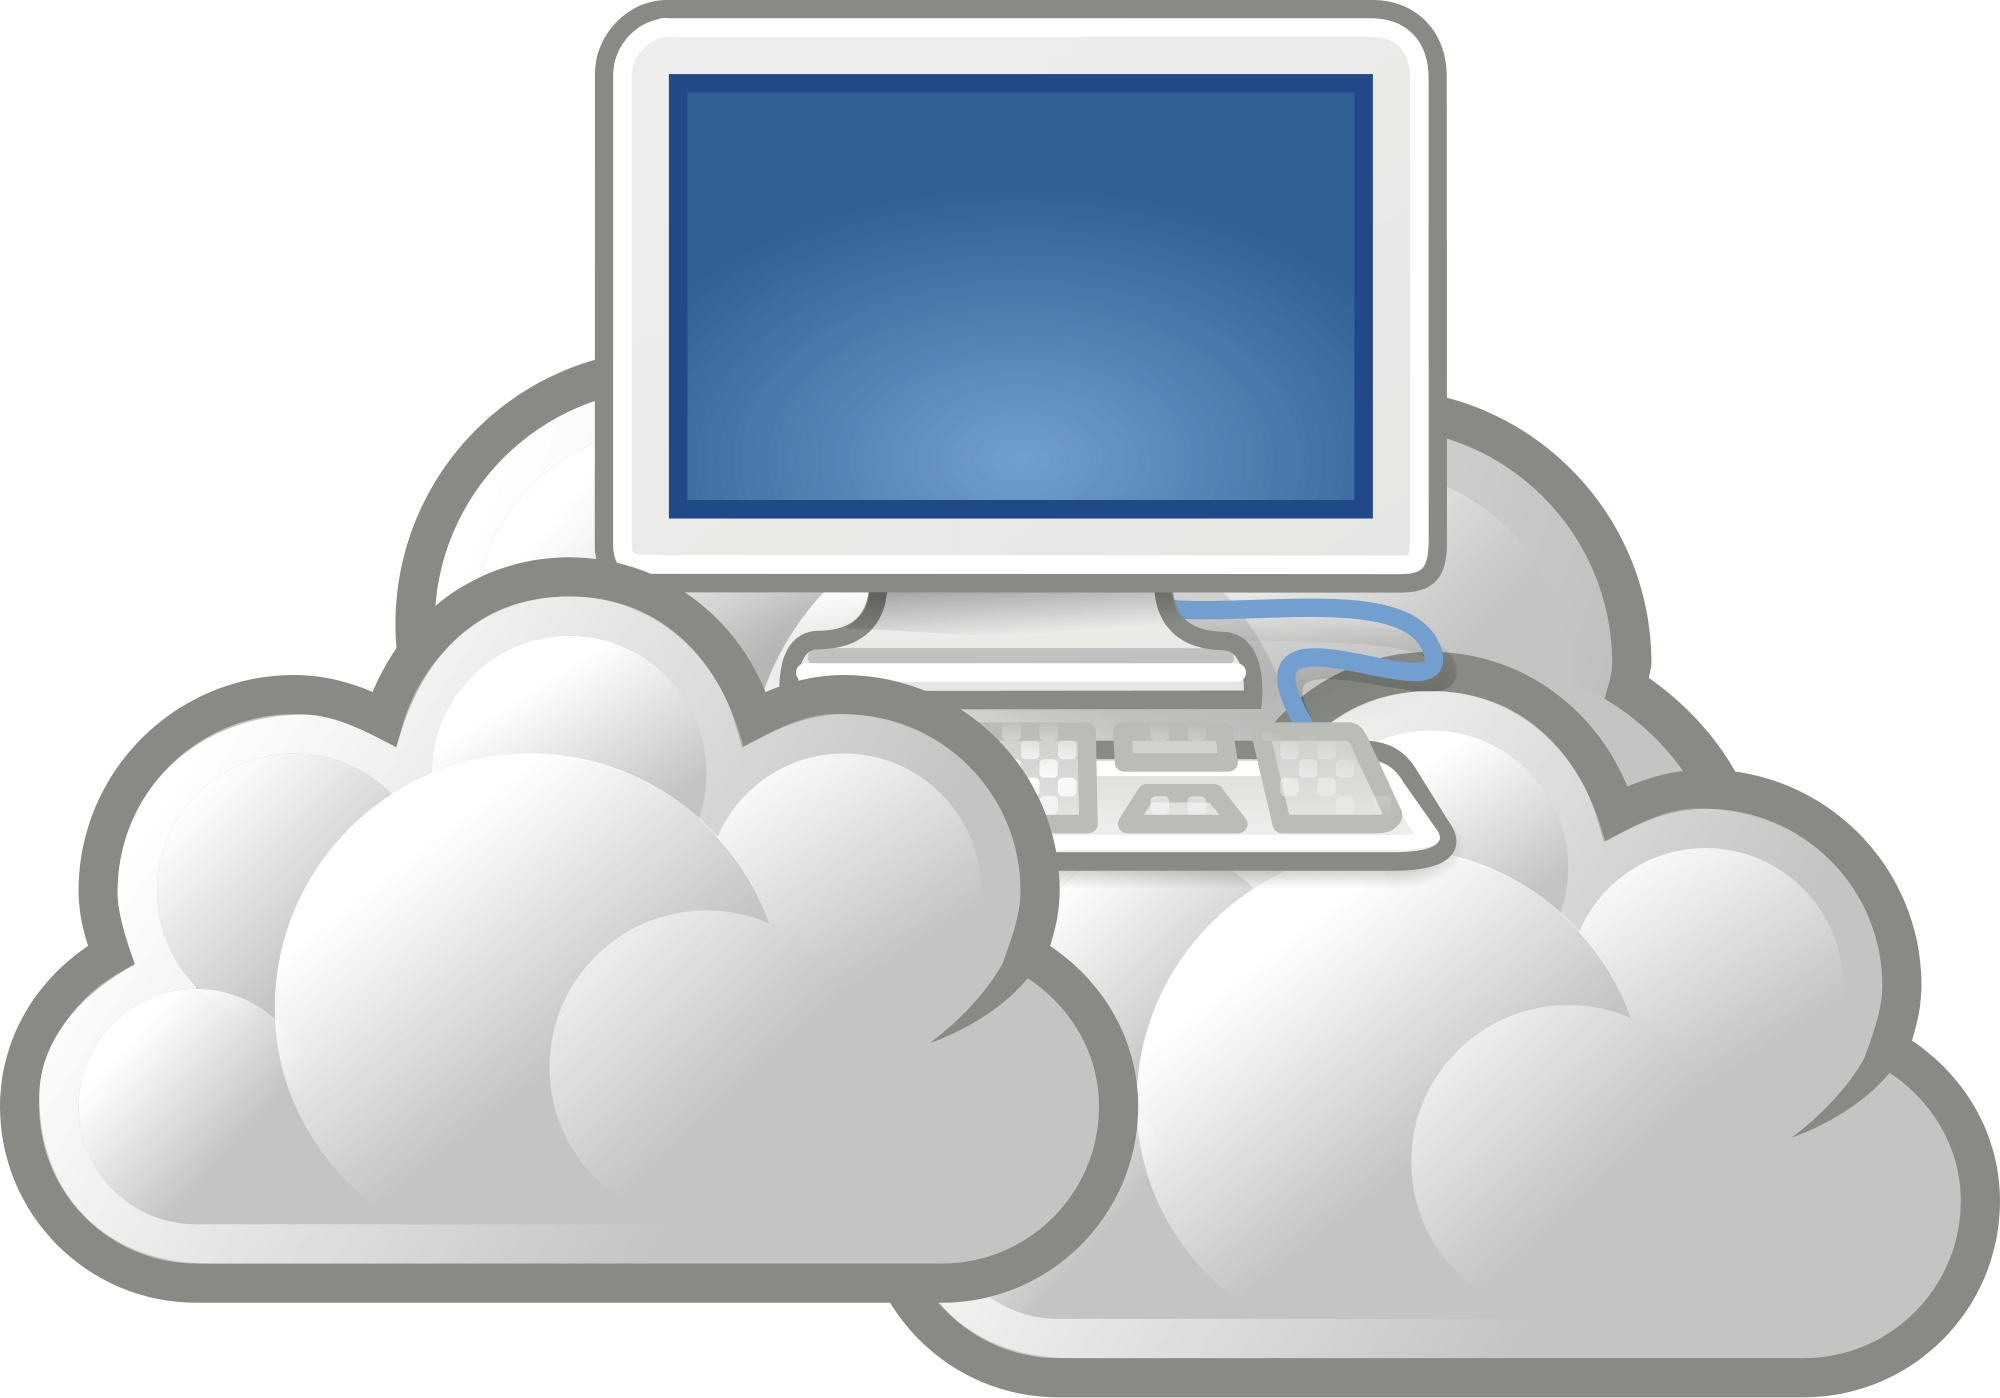 Website clipart electronics. Cloud hosting services why